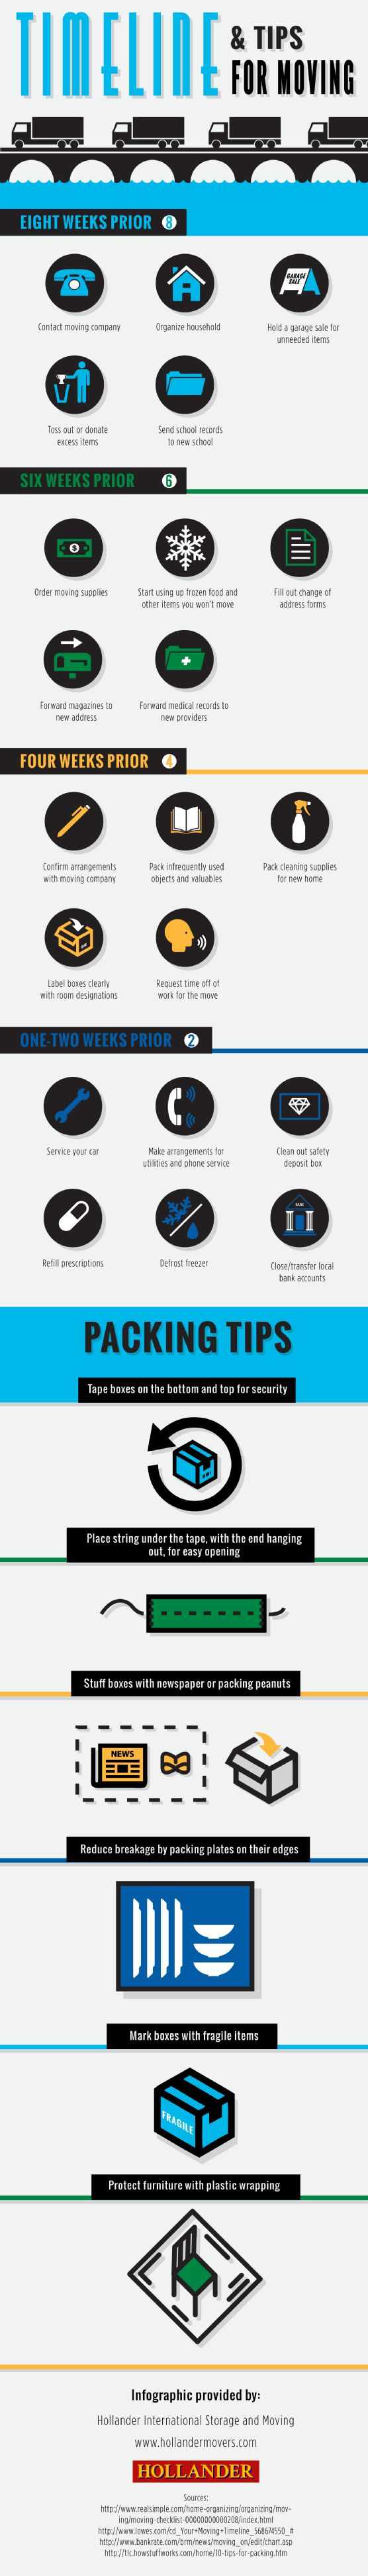 When packing for a move, use secure tape to safely seal the bottom and top of every carton and clearly label each package. Check out this infographic from a moving company in Naperville to learn more about relocating.